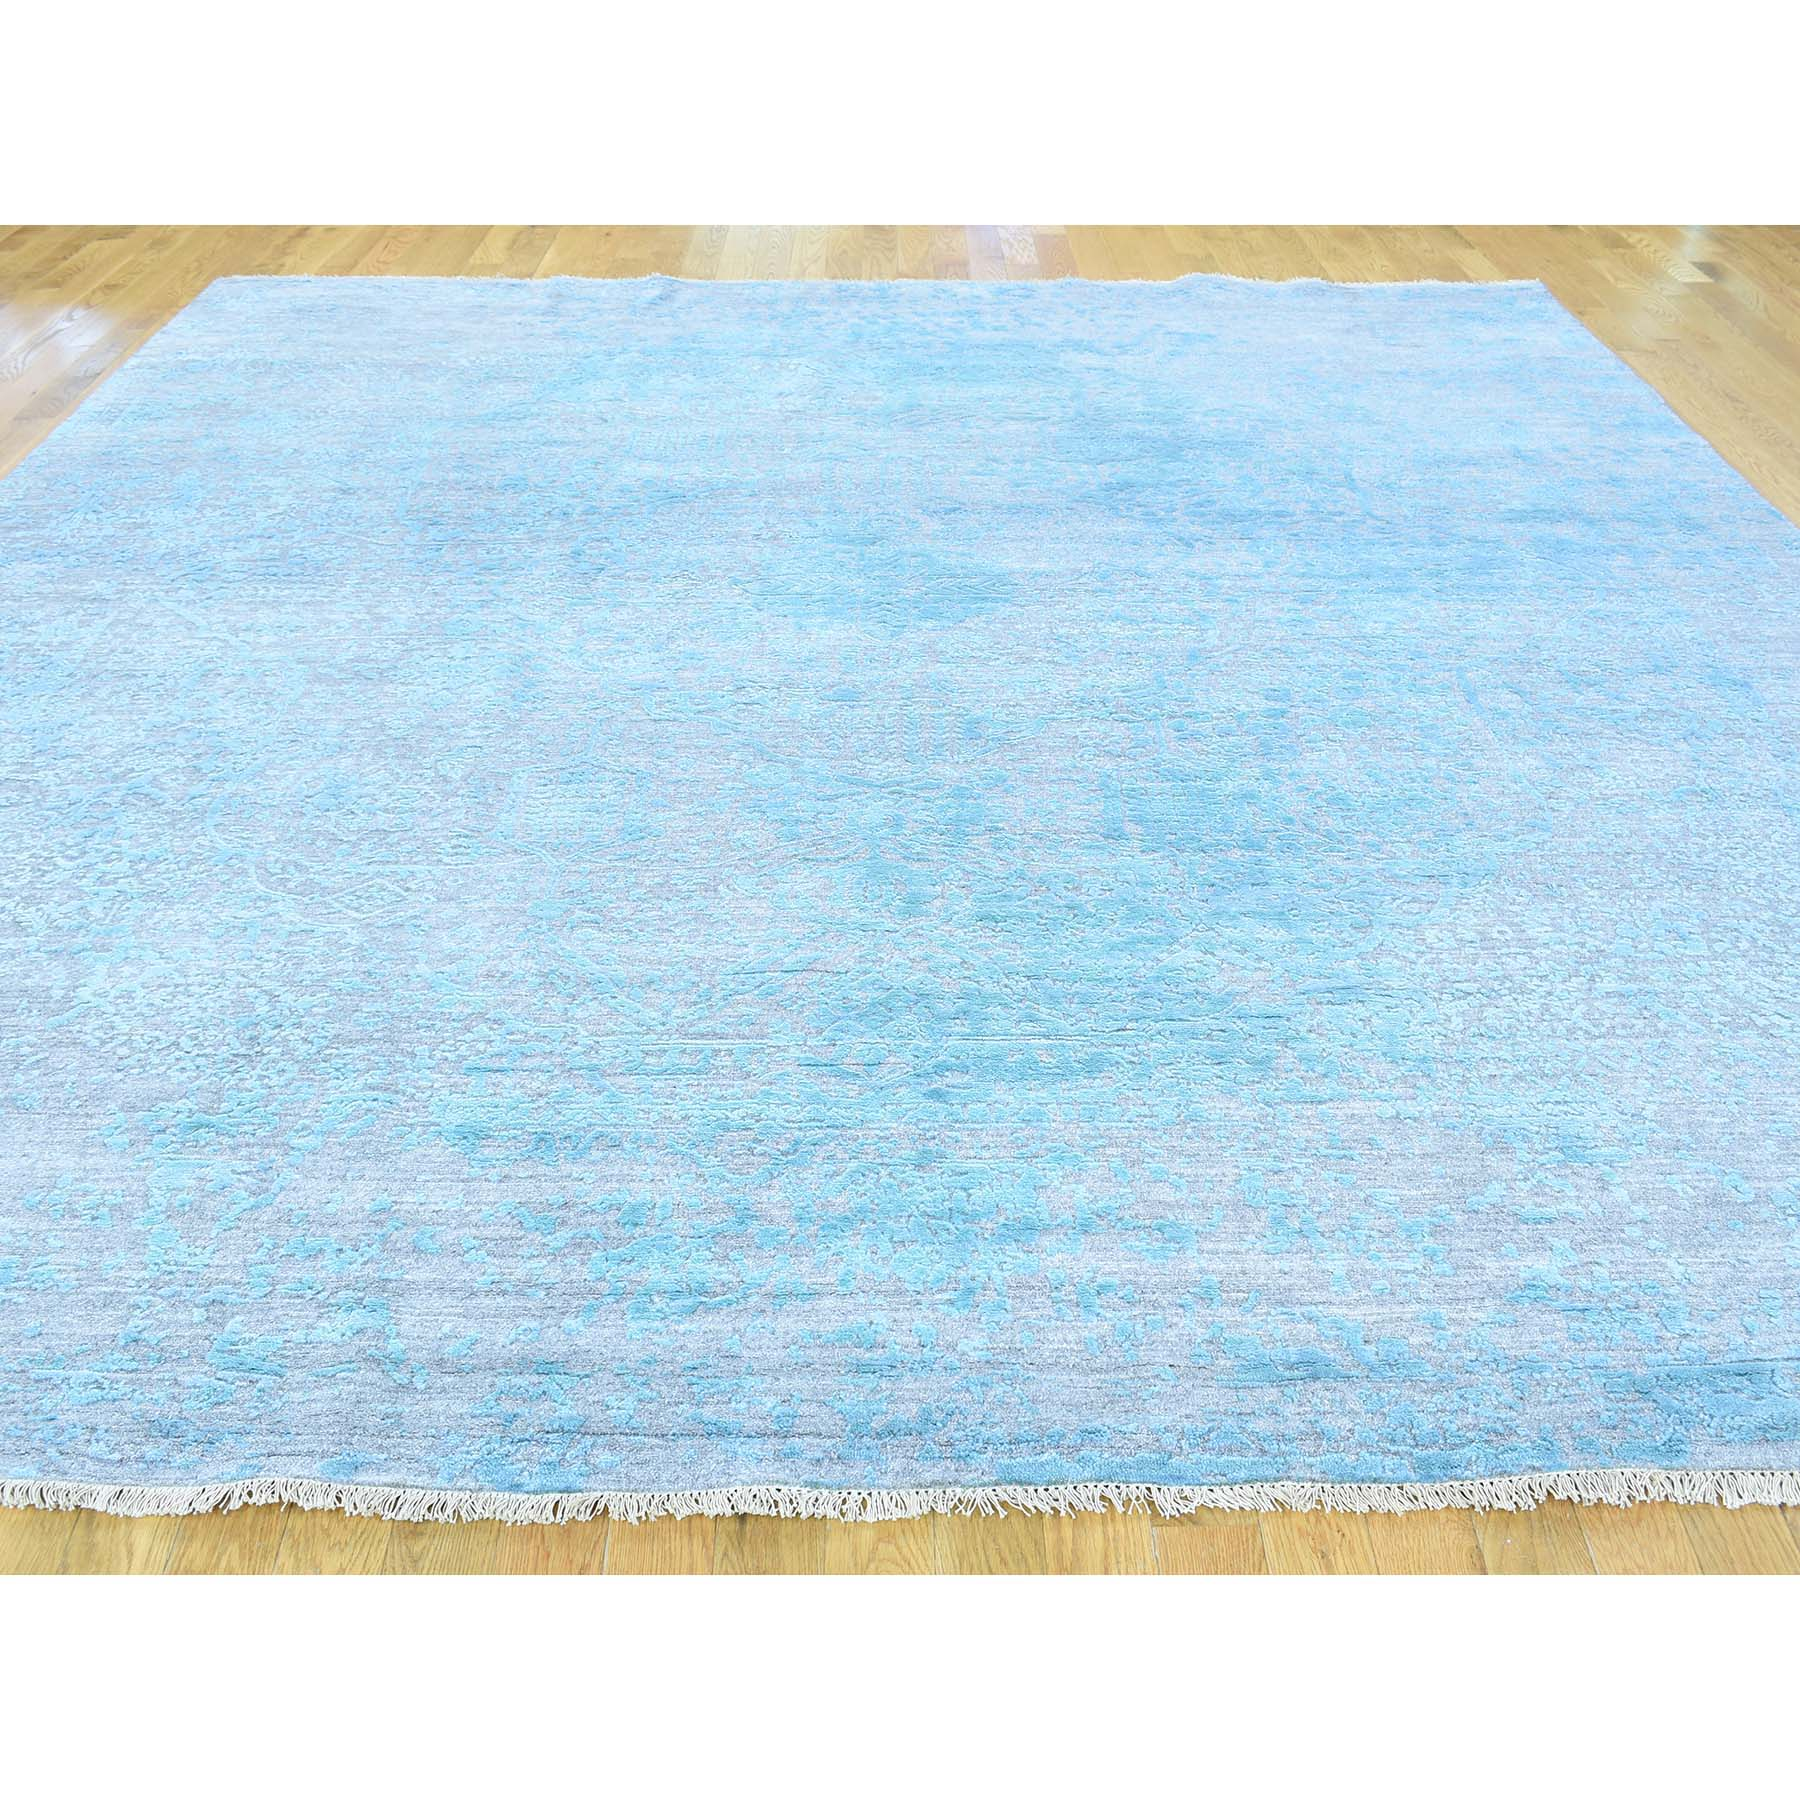 "Handmade Transitional Square Rug > Design# SH30861 > Size: 10'-0"" x 10'-0"" [ONLINE ONLY]"